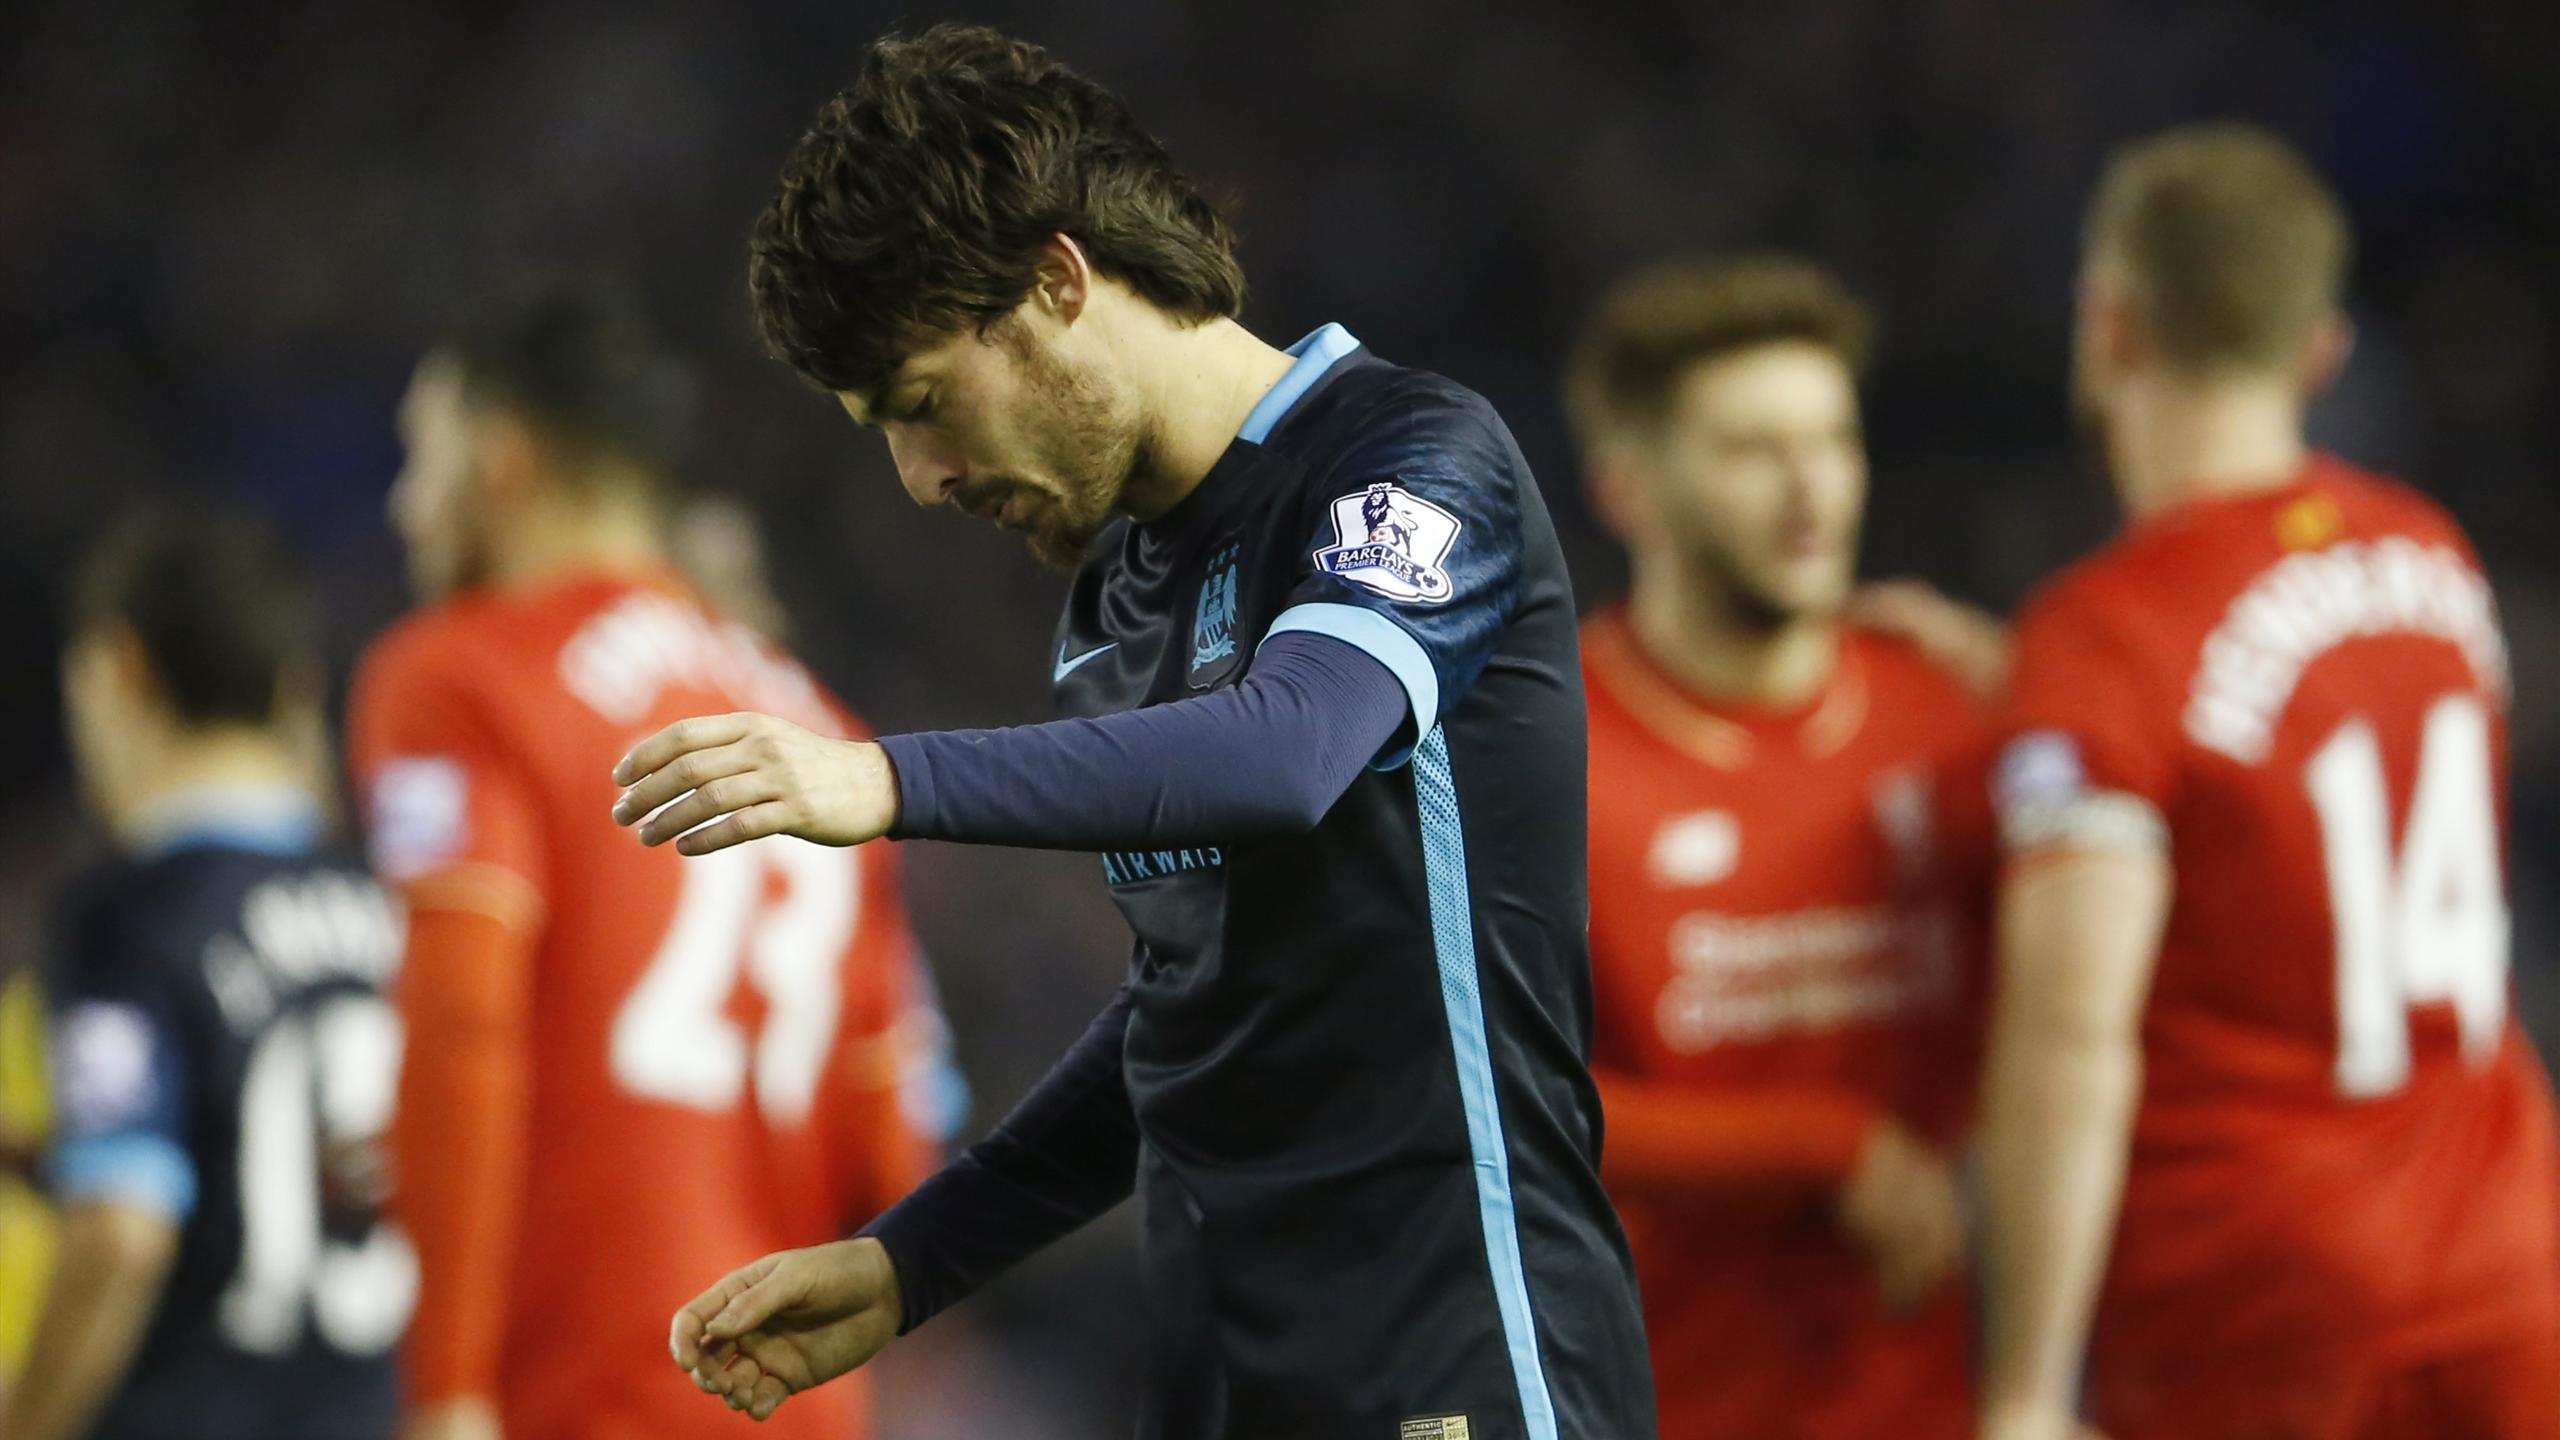 Manchester City's David Silva looks dejected